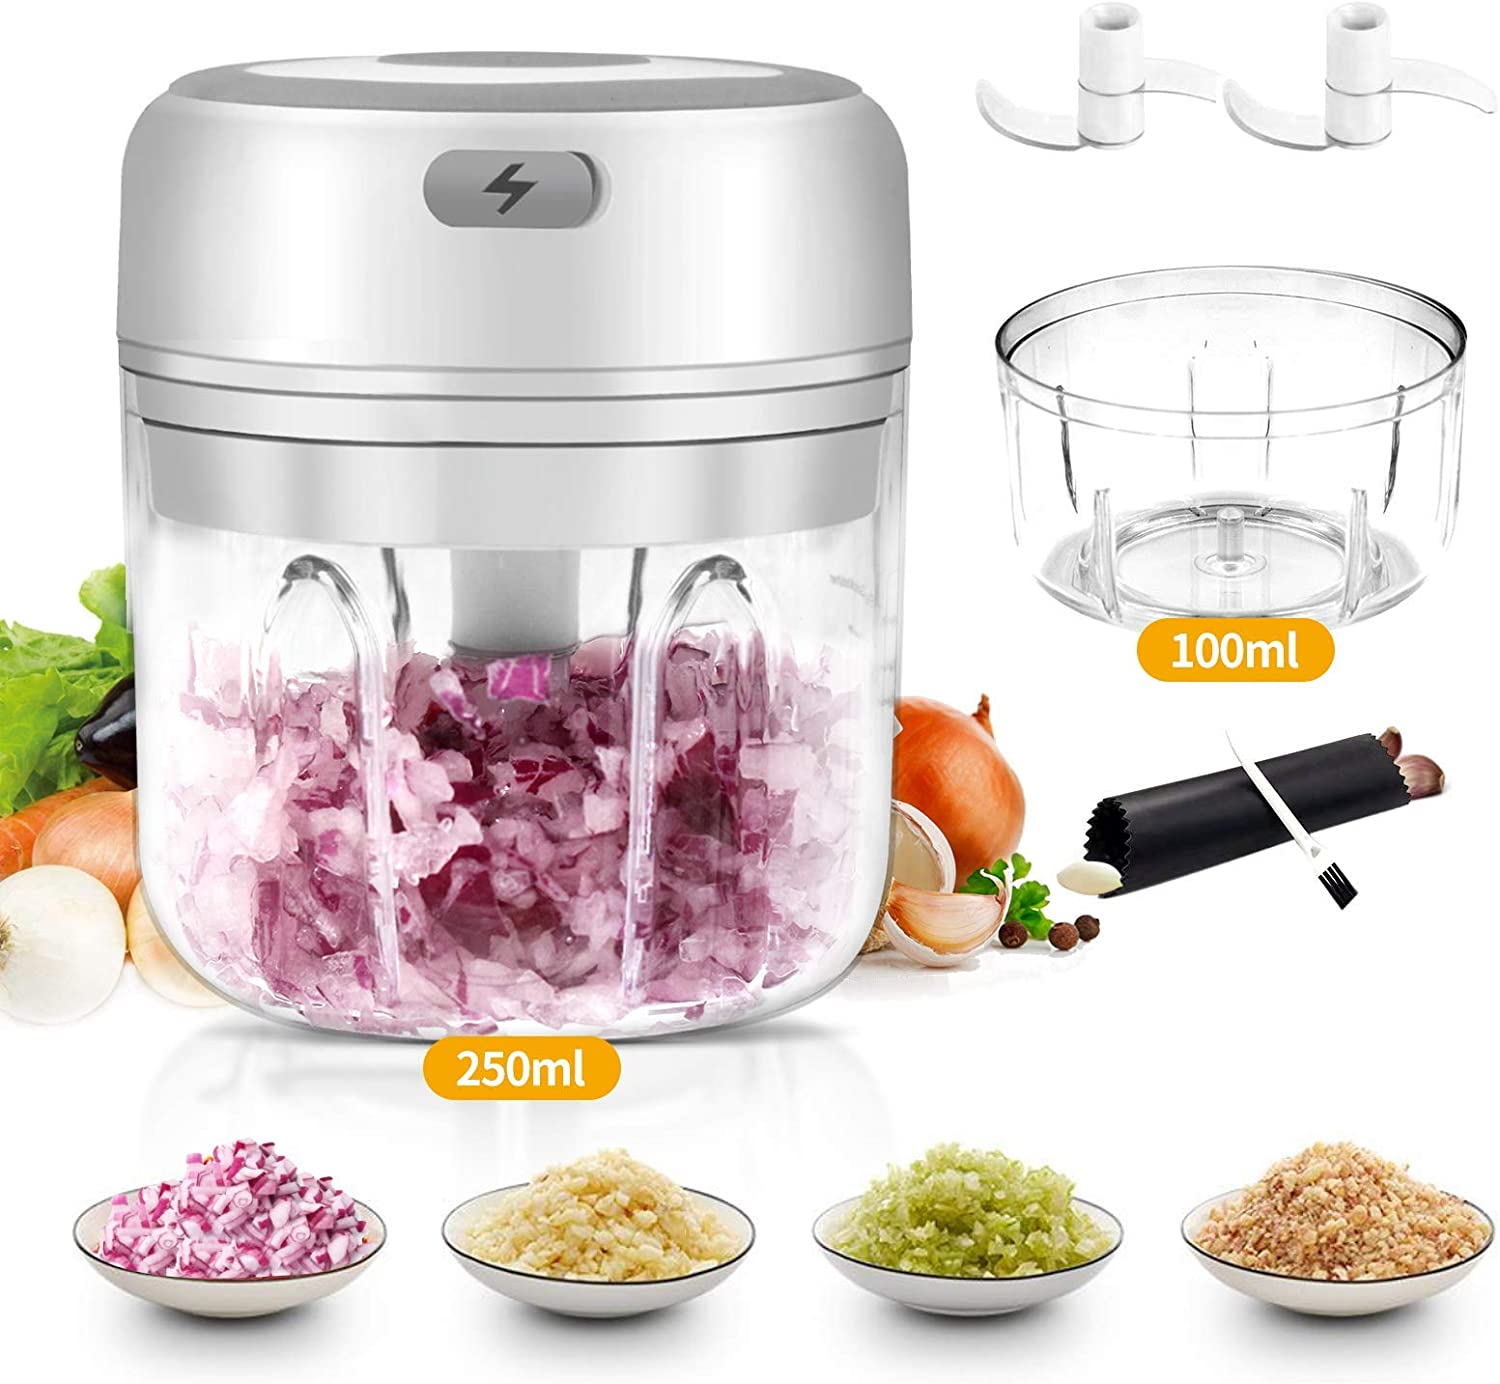 Mini Garlic Chopper, Electric Mincer, Food Dicers, Food Slicer Crusher, Wireless, Rechargeable & Portable for Garlic/Chili/Vegetables/Onions/Nuts/Pepper/Ginger